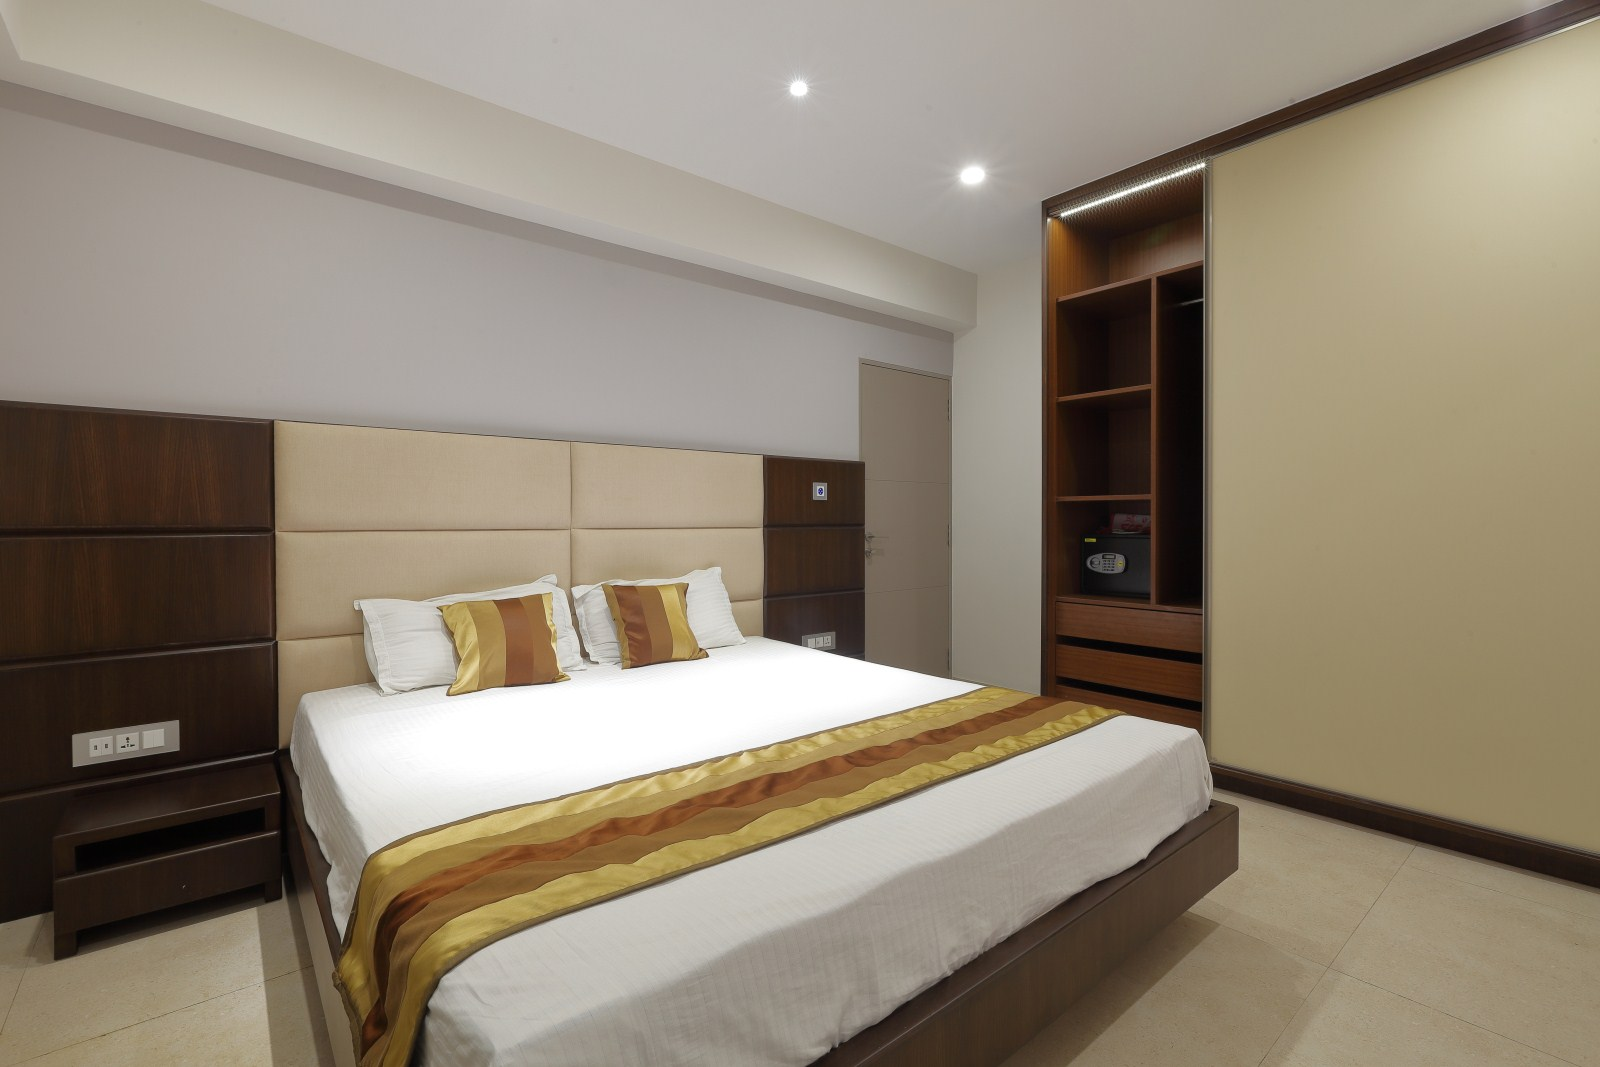 Interior Design Cost For Bedroom